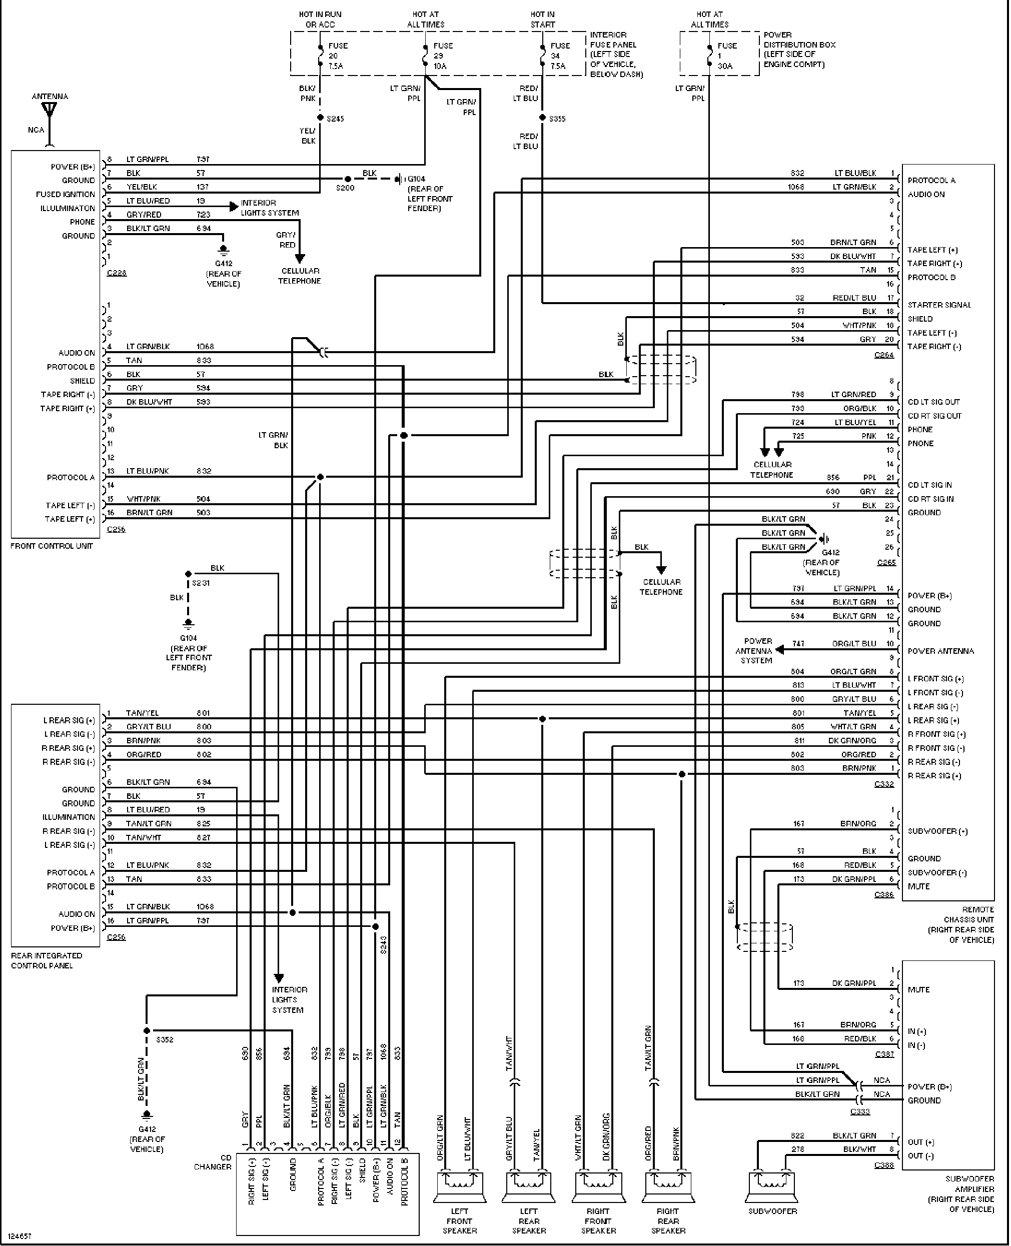 2005 Ford Expedition Radio Wiring Diagram - Wiring Diagram